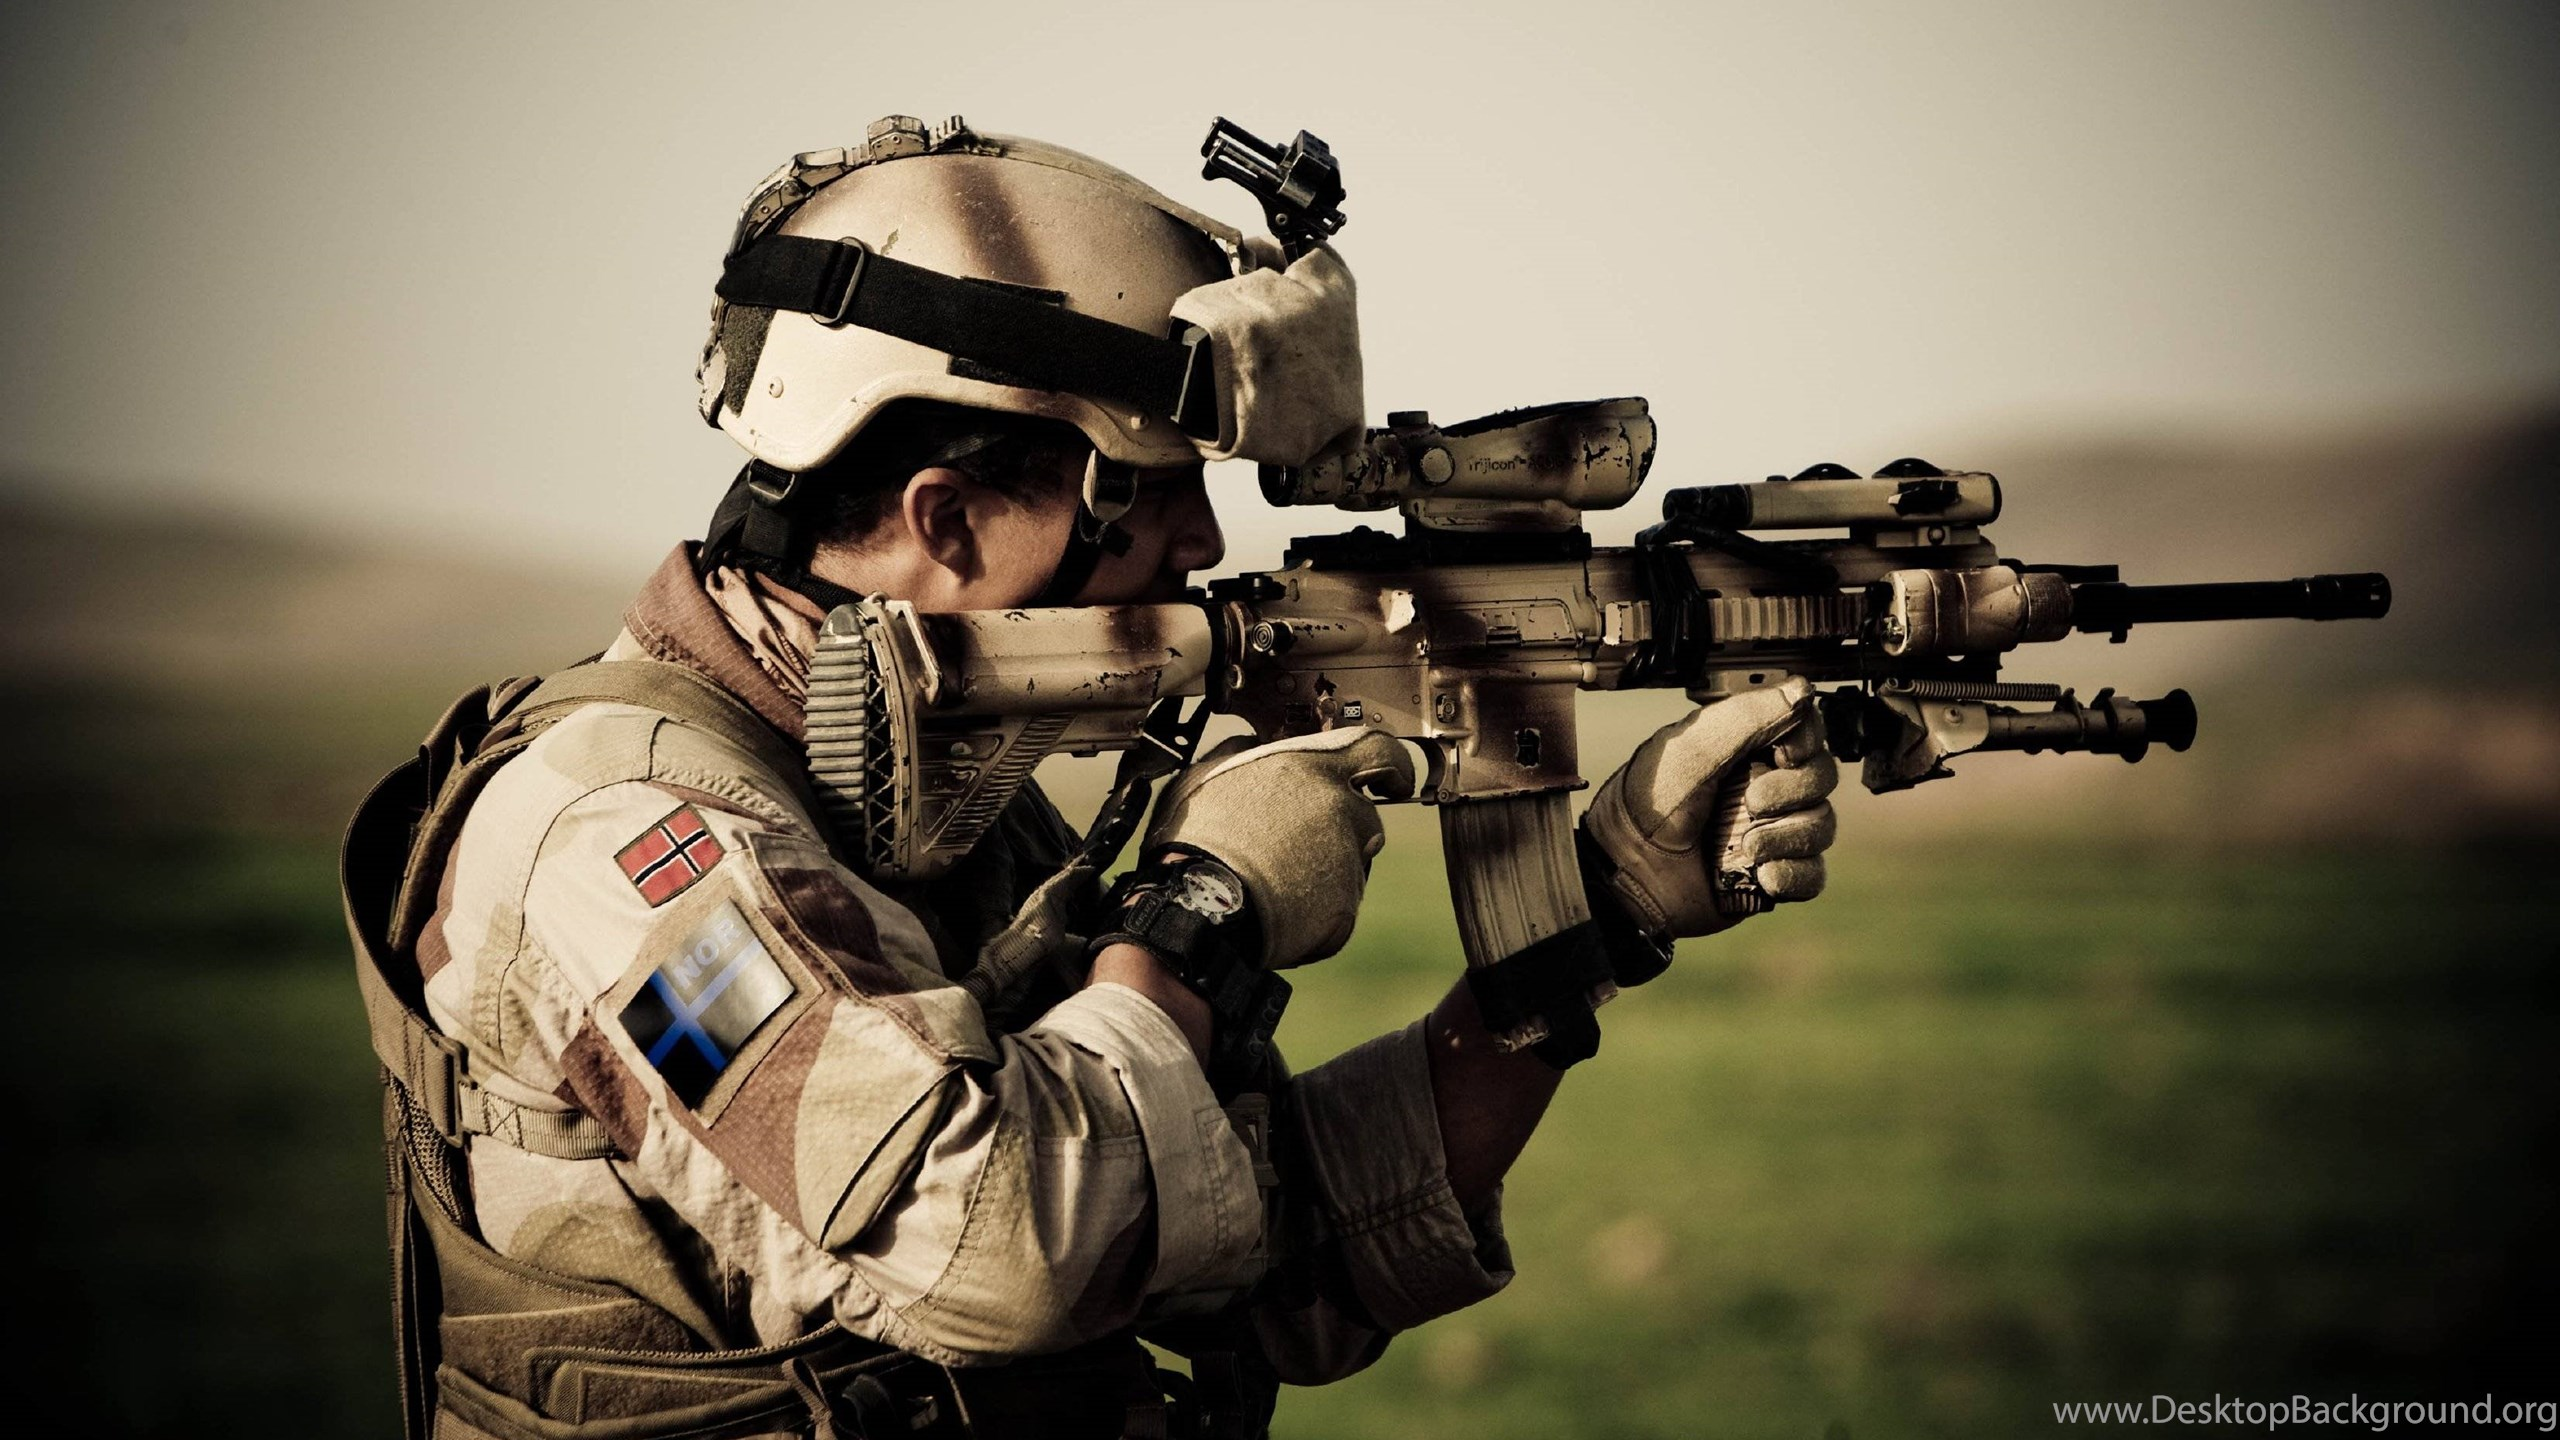 Sniper army photography wallpapers hd desktop background netbook voltagebd Choice Image